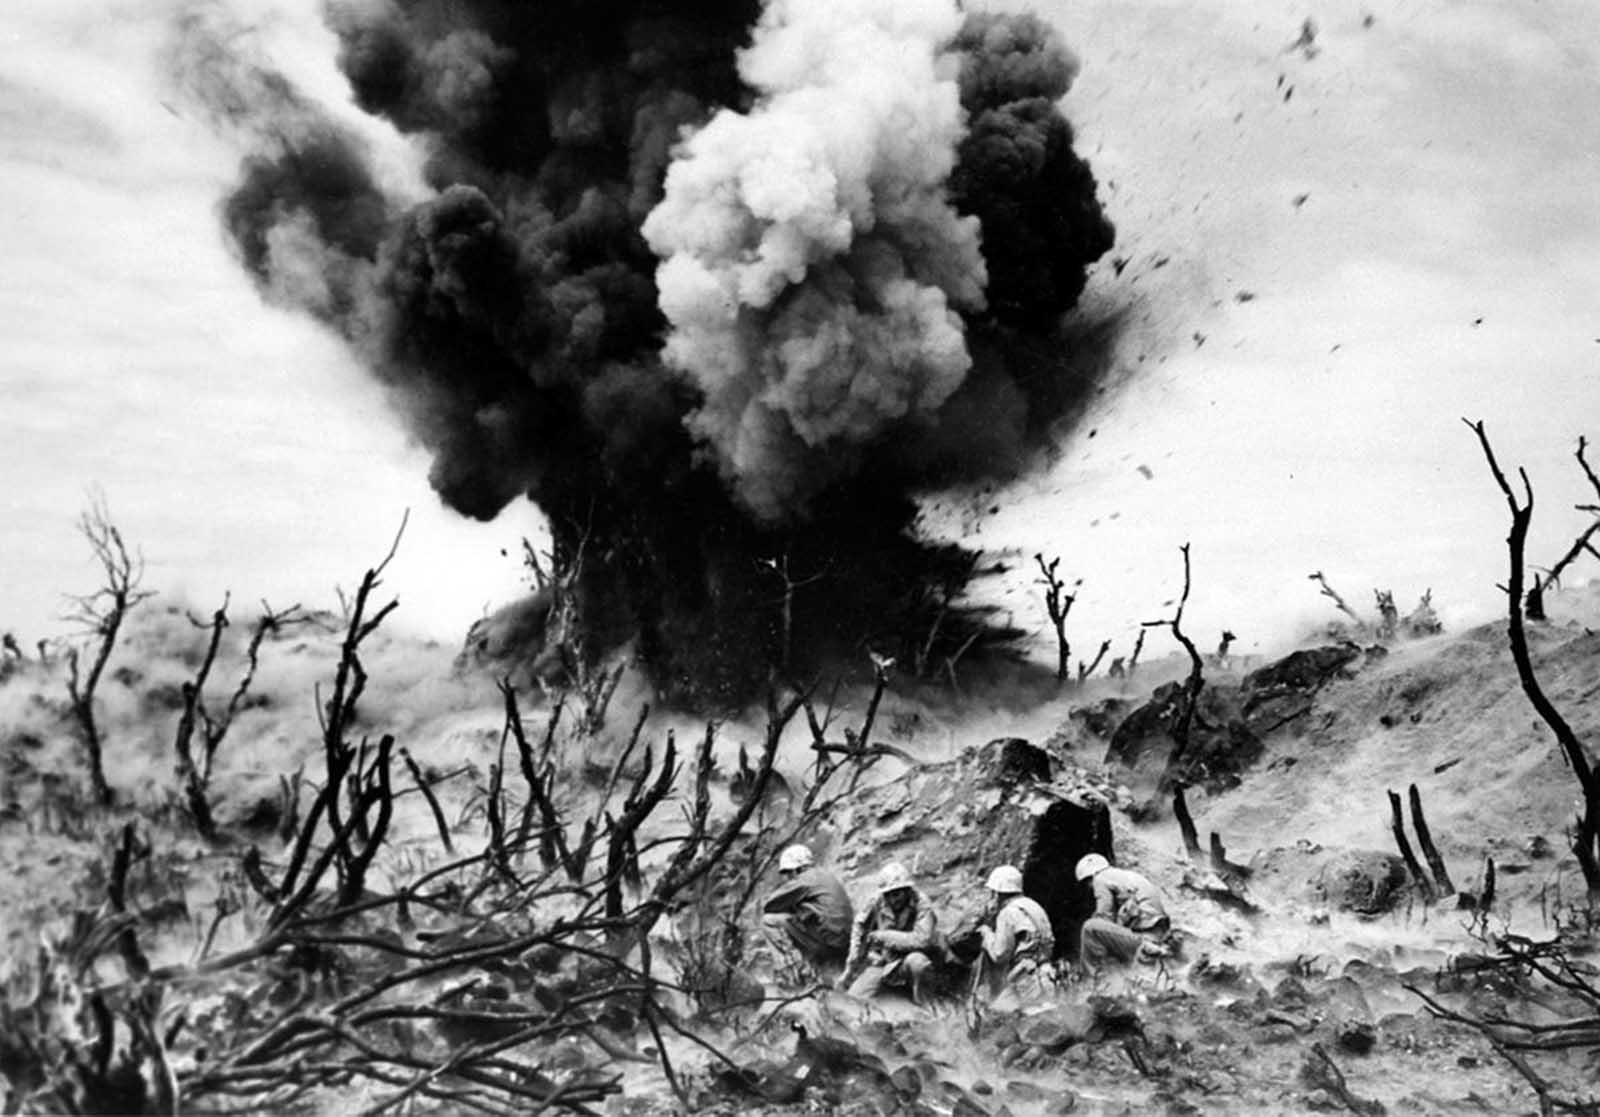 An attack on one of the caves connected to a three-tier blockhouse destroys the structure on the edge of Turkey Nob, giving a clear view of the beachhead toward the southwest on Iwo Jima, as U.S. Marines storm the island on April 2, 1945.